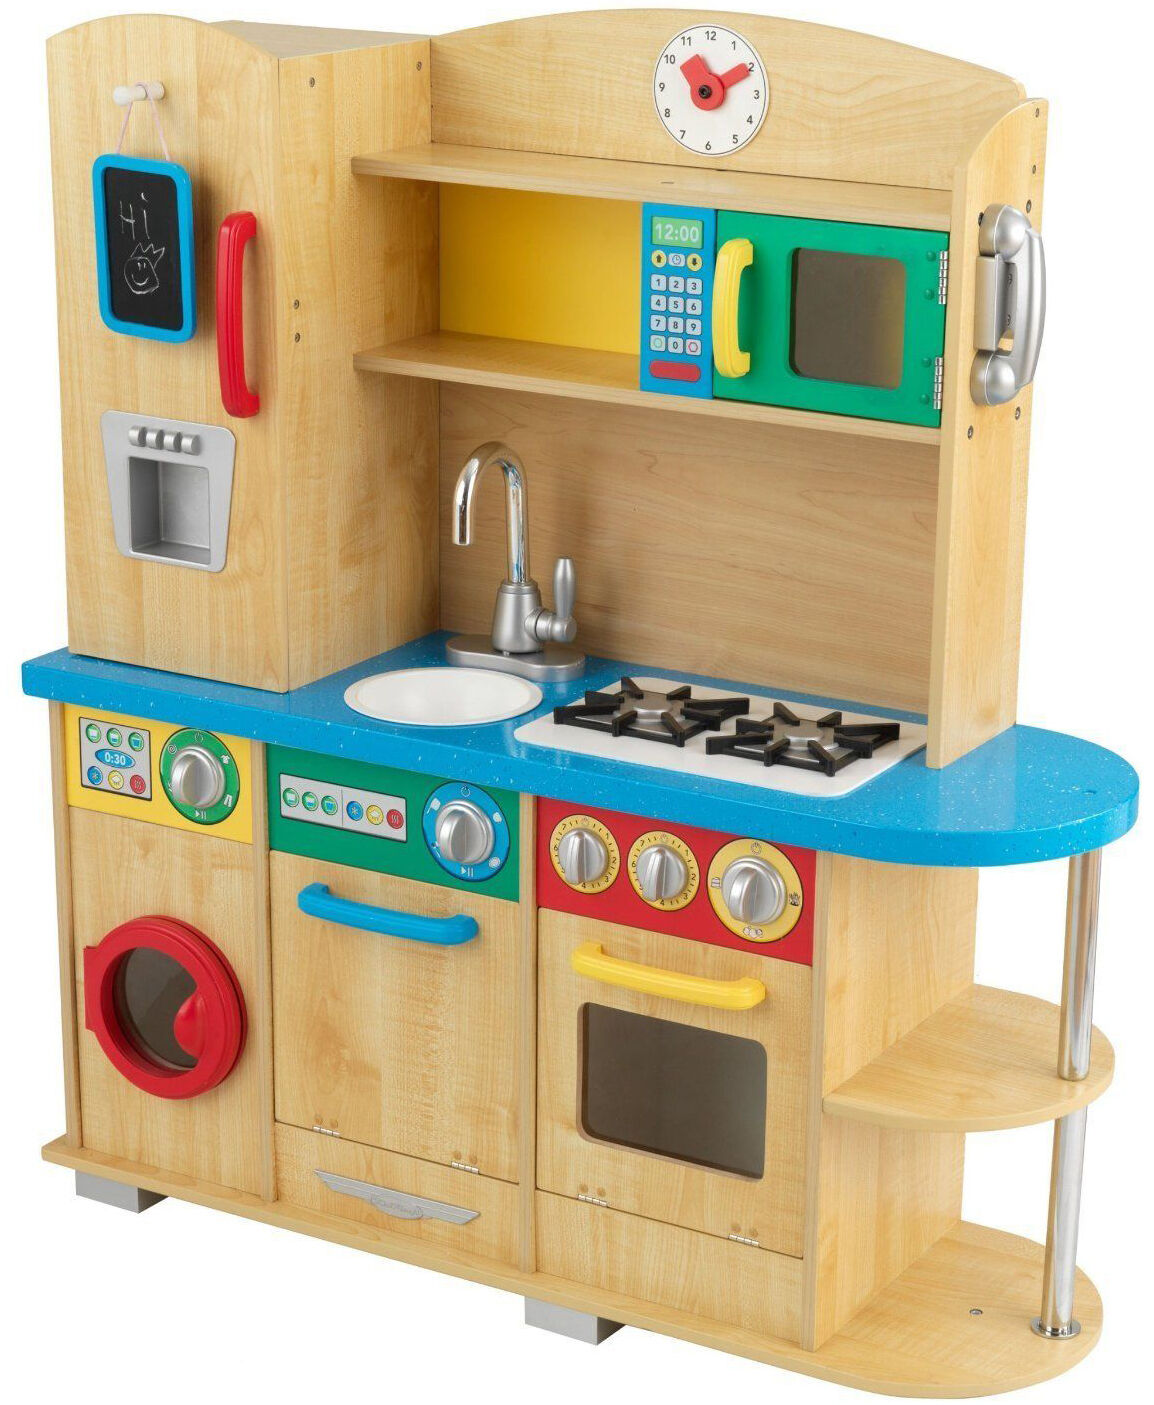 top  wooden kitchens for kids  ebay - kidkraft cook together kitchen children